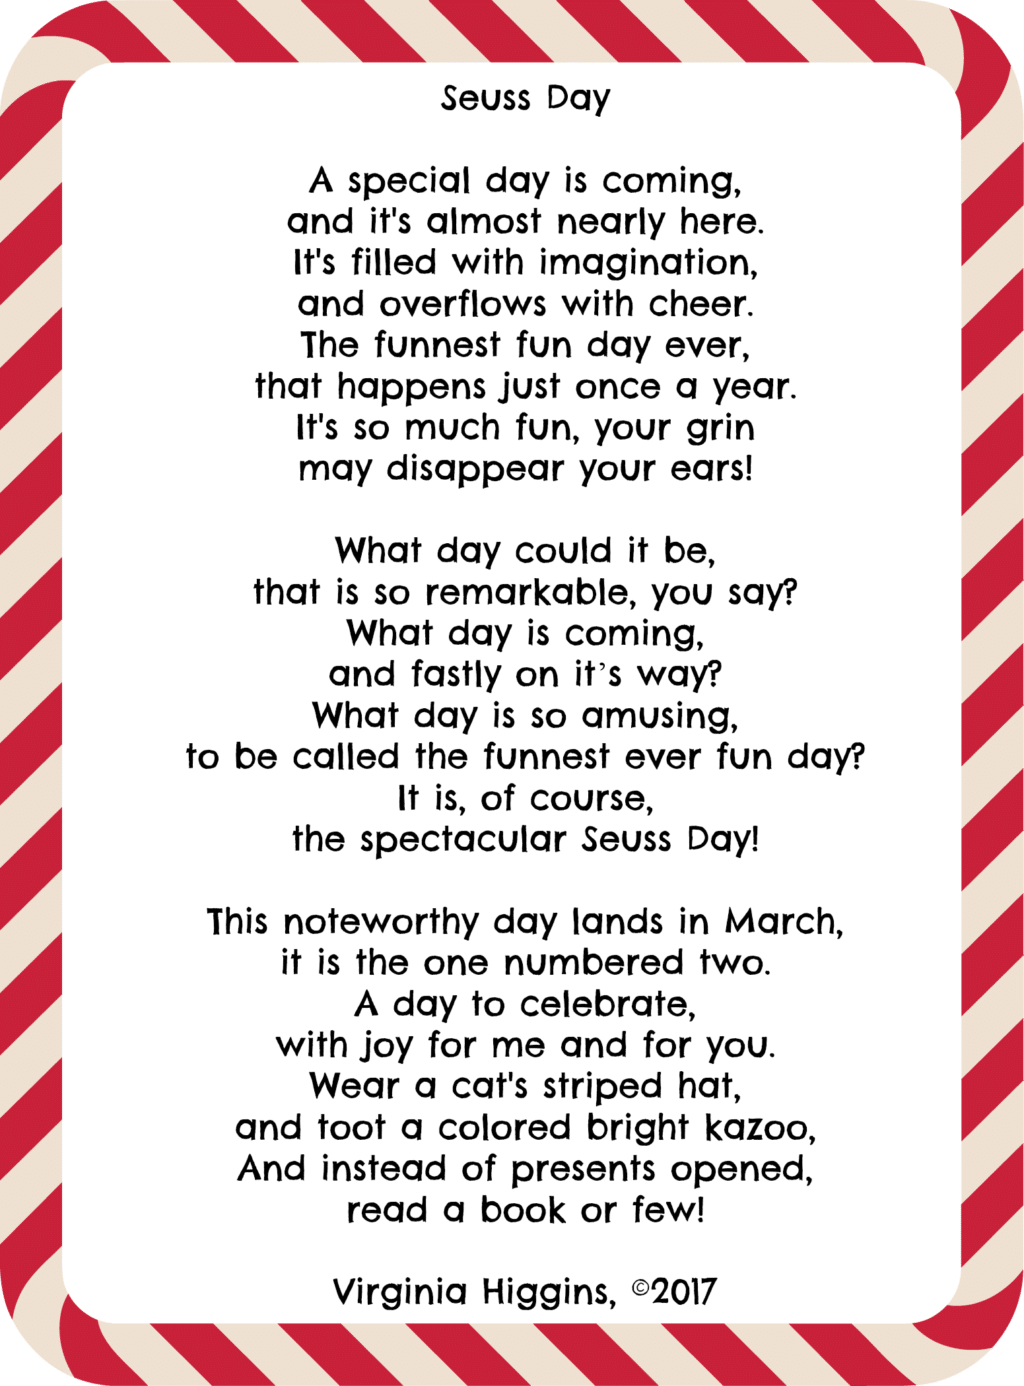 Seuss Day Poem by Virginia Higgins, ©2017 at thatbaldchick.com